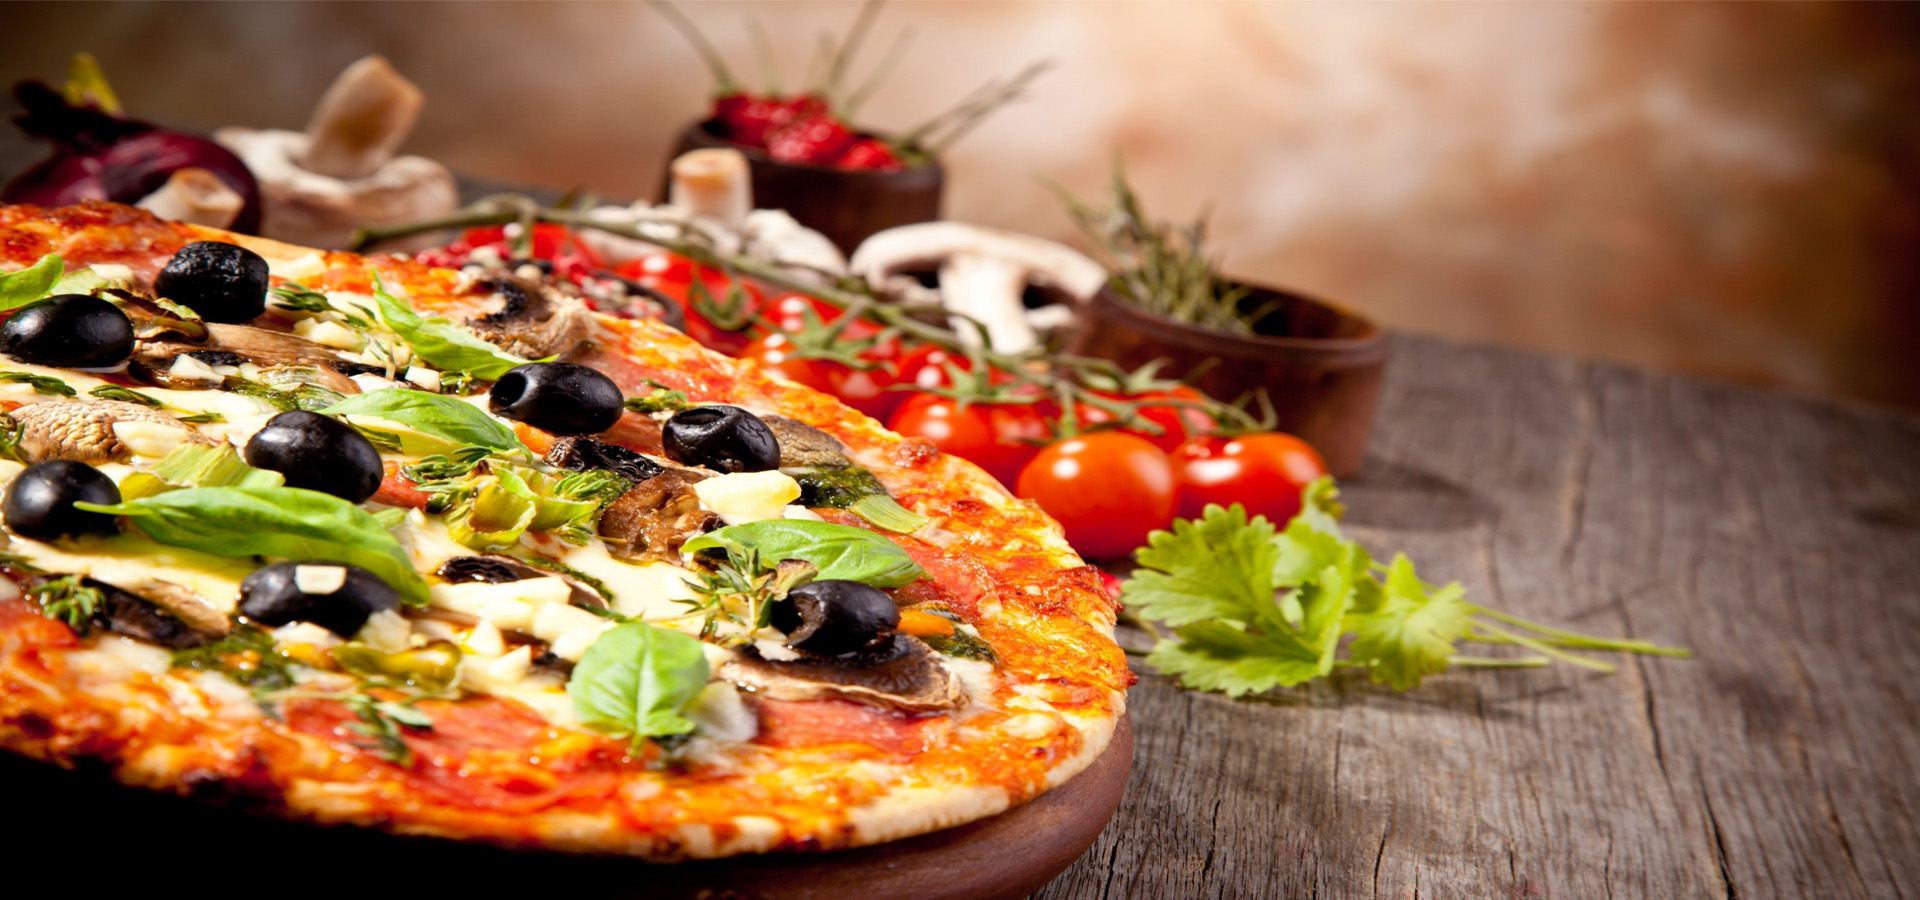 <h2>ROMEO RESTAURANT</h2><p>Pizza - Grill - Cafe | Παραλία Βόλου</p>